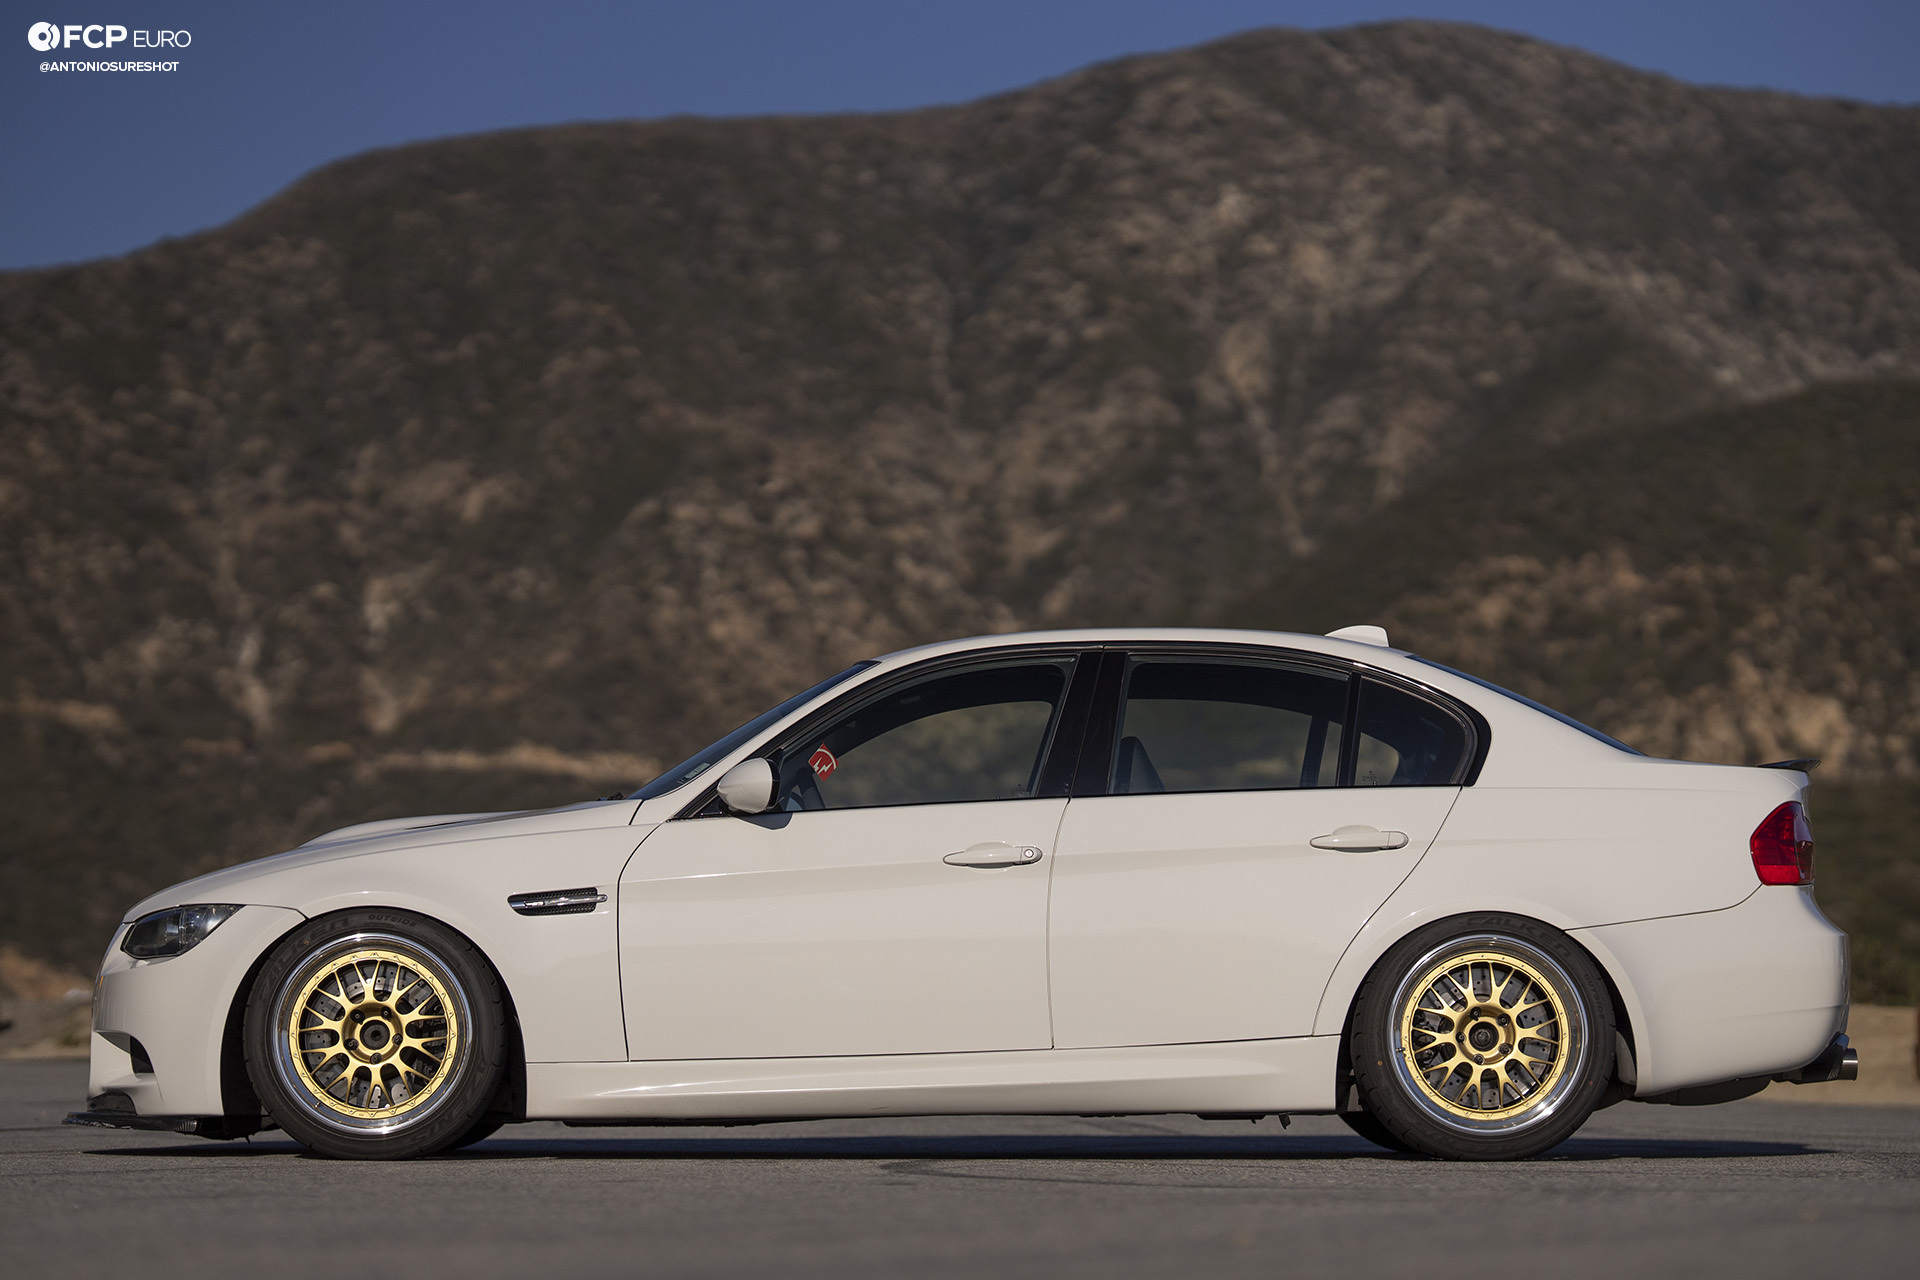 BMW E90 M3 Sedan Slicktop BBS E88 KW Suspension Side Profile